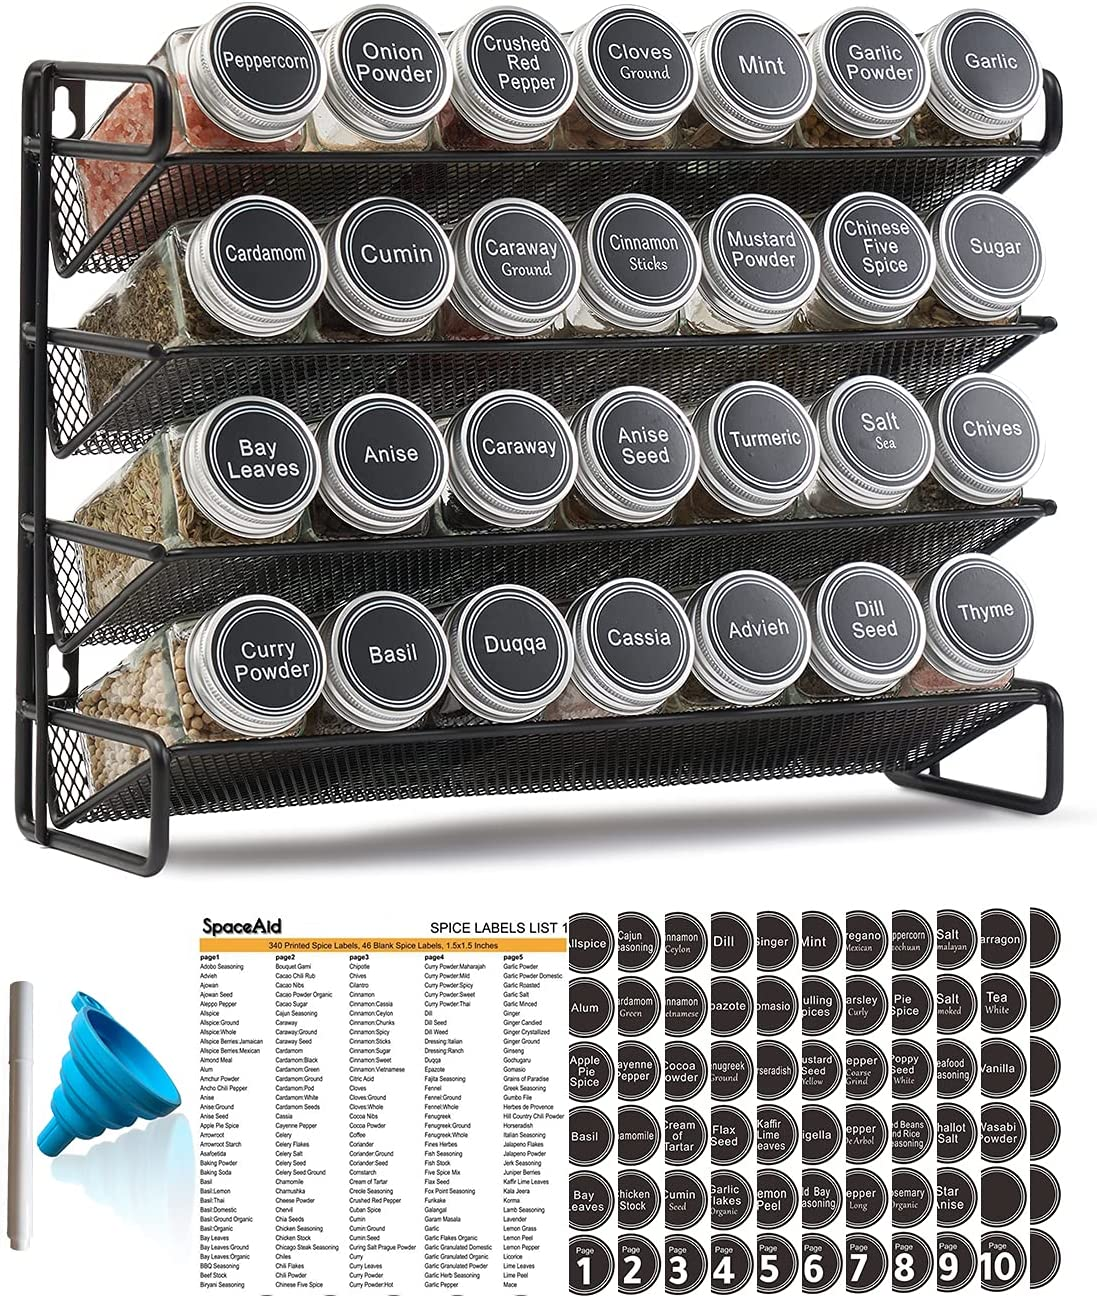 SpaceAid 4 Tier Spice Sale special price Max 44% OFF Rack Glass 28 with Organizer Jars